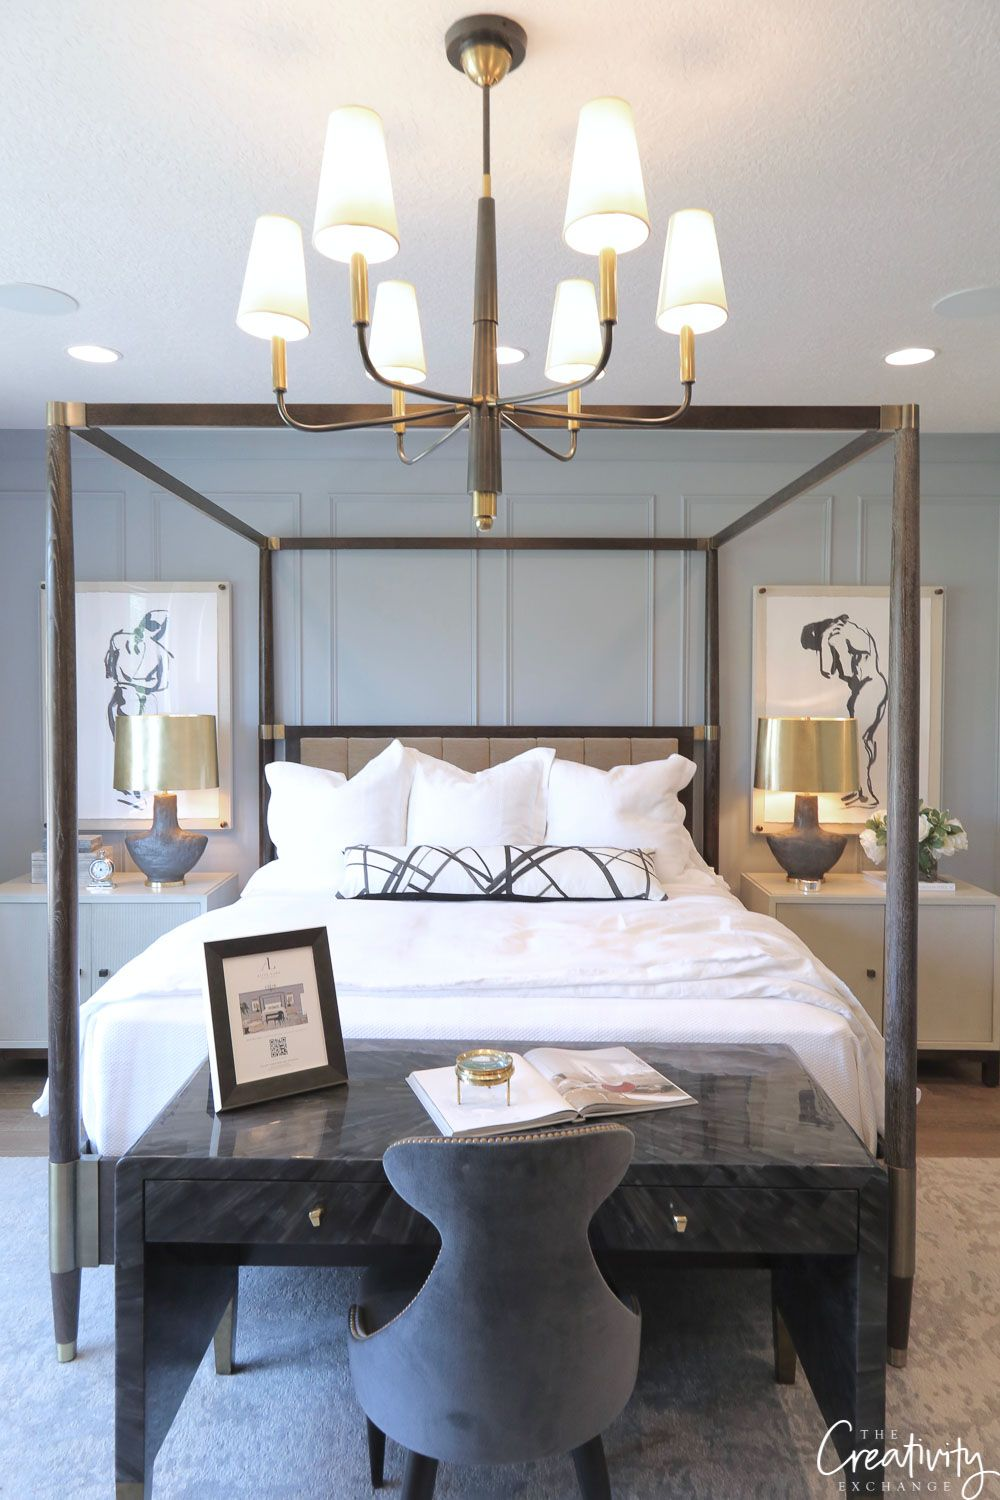 2019 Paint Color Trends And Forecasts Bedroom Paint Colors Master Bedroom Trends Master Bedroom Paint